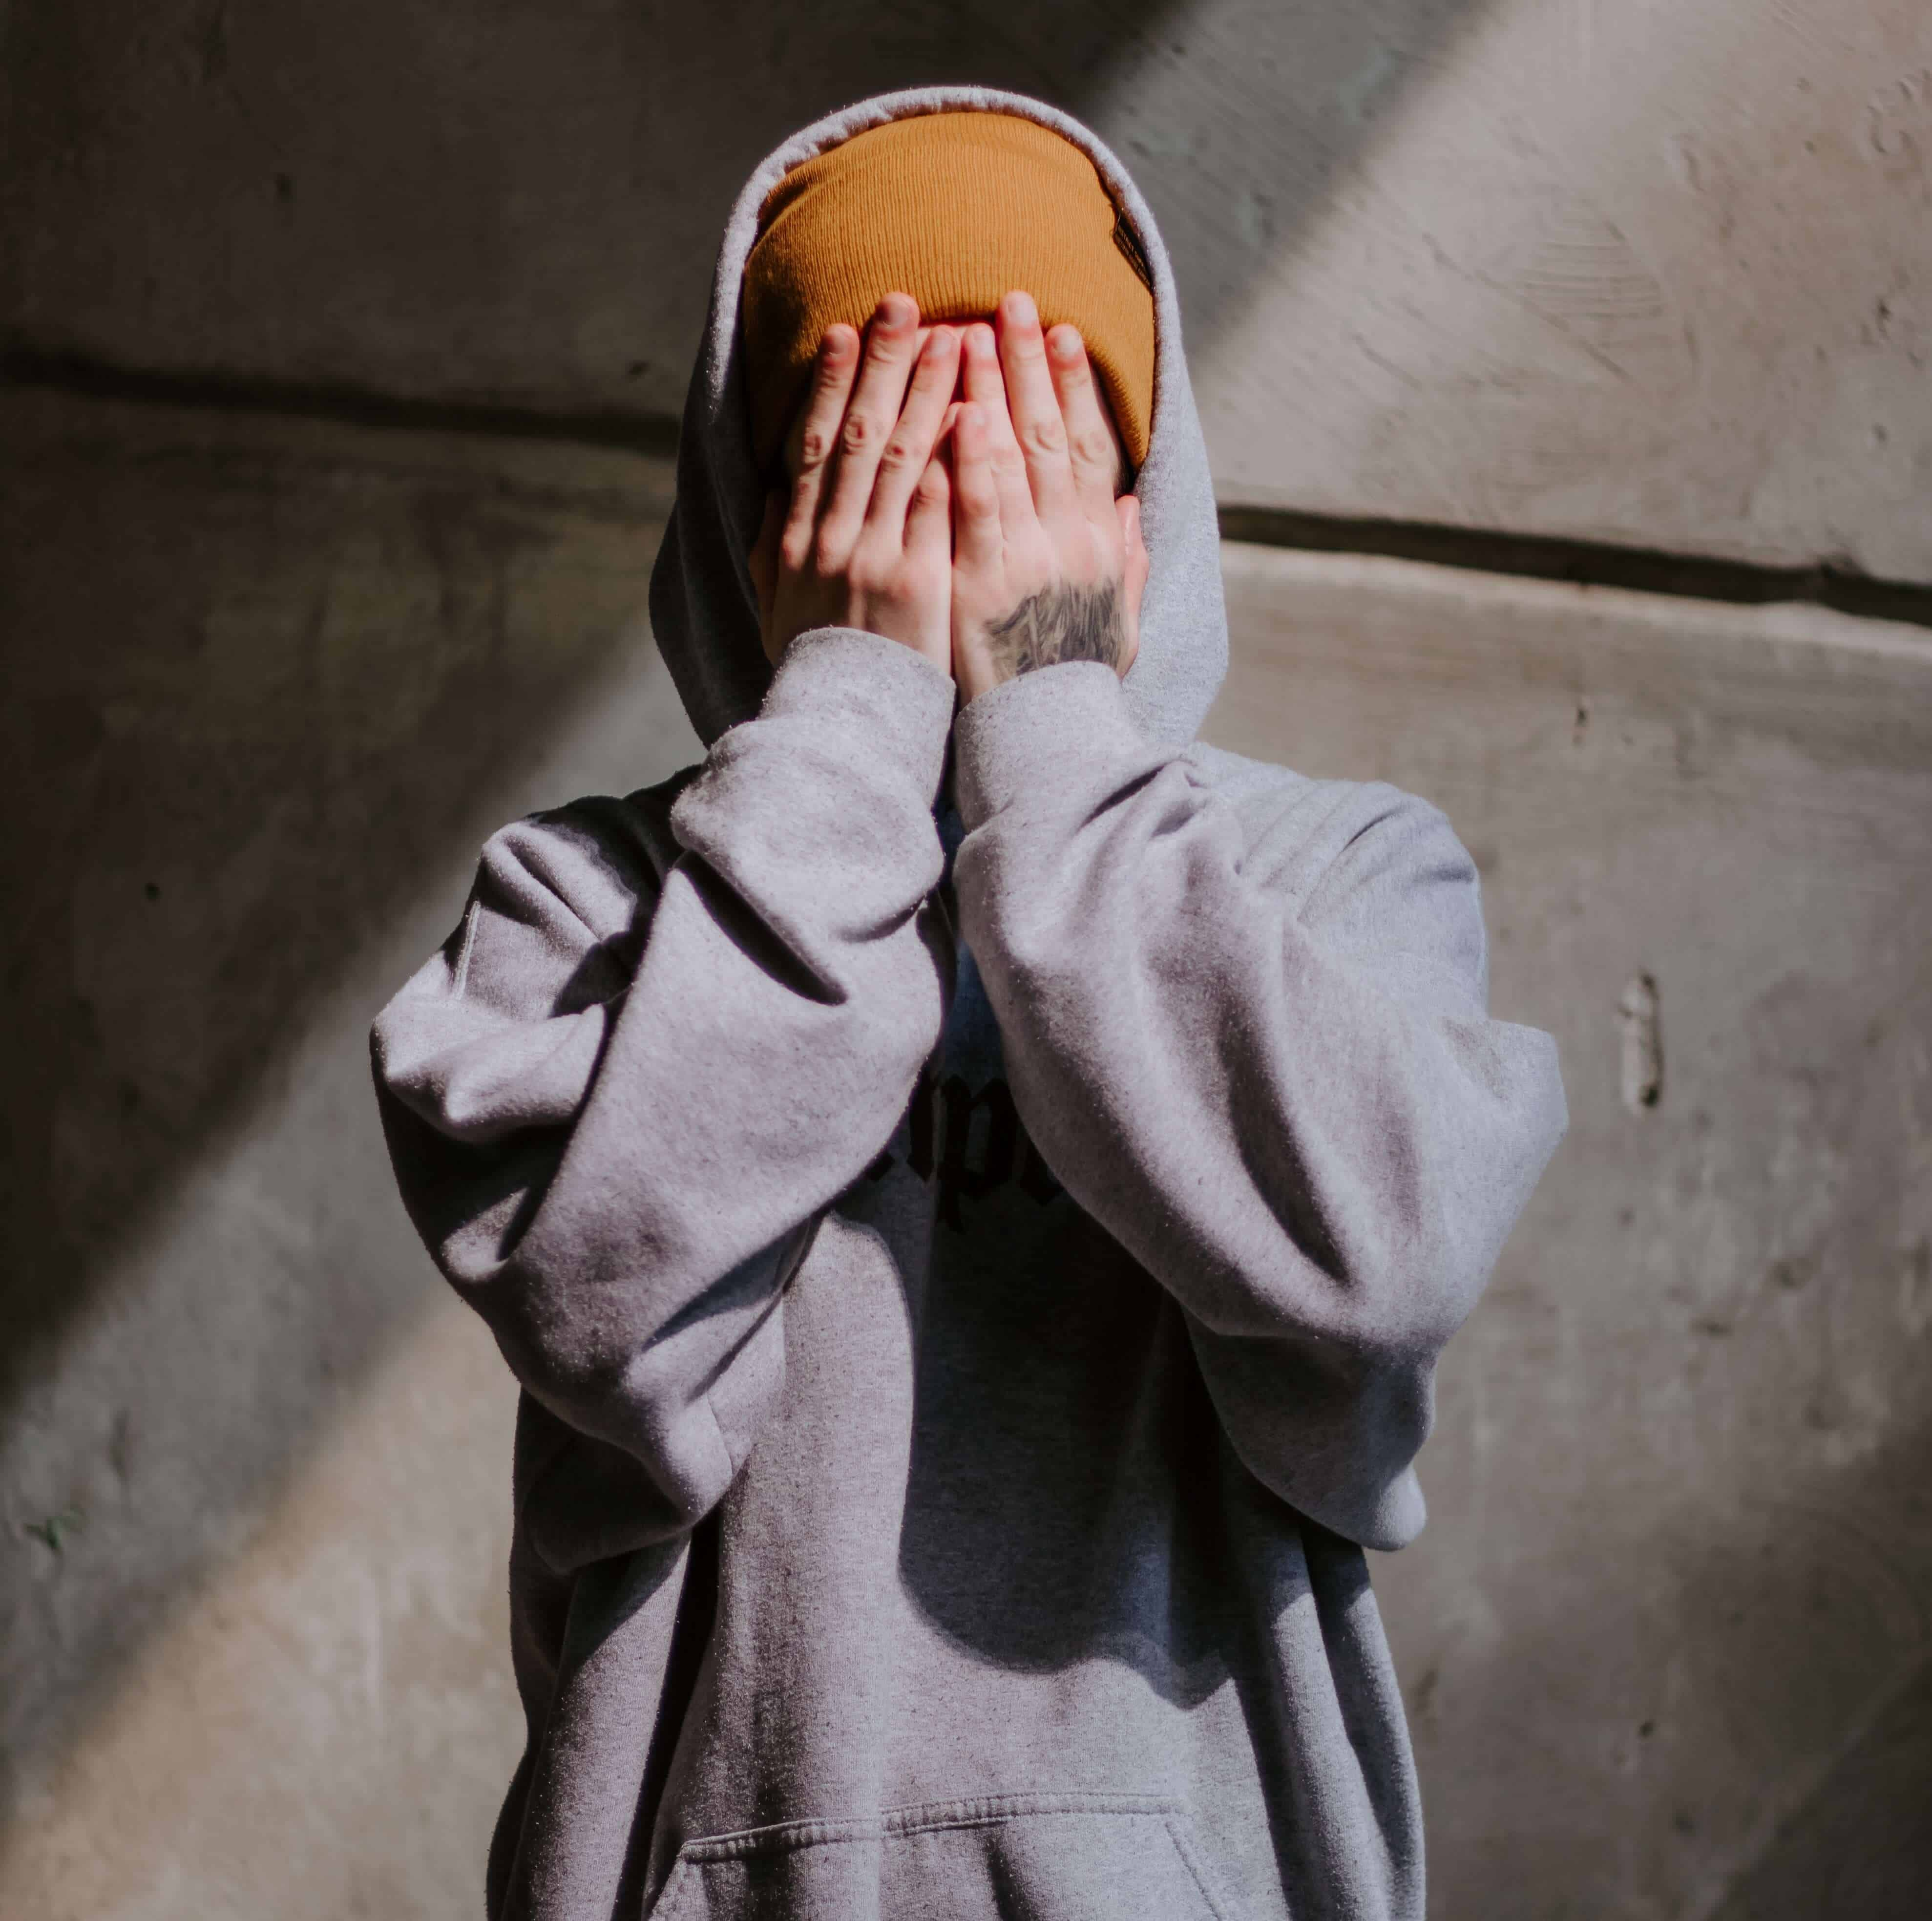 A boy with his hands covering his face wearing a hoodie